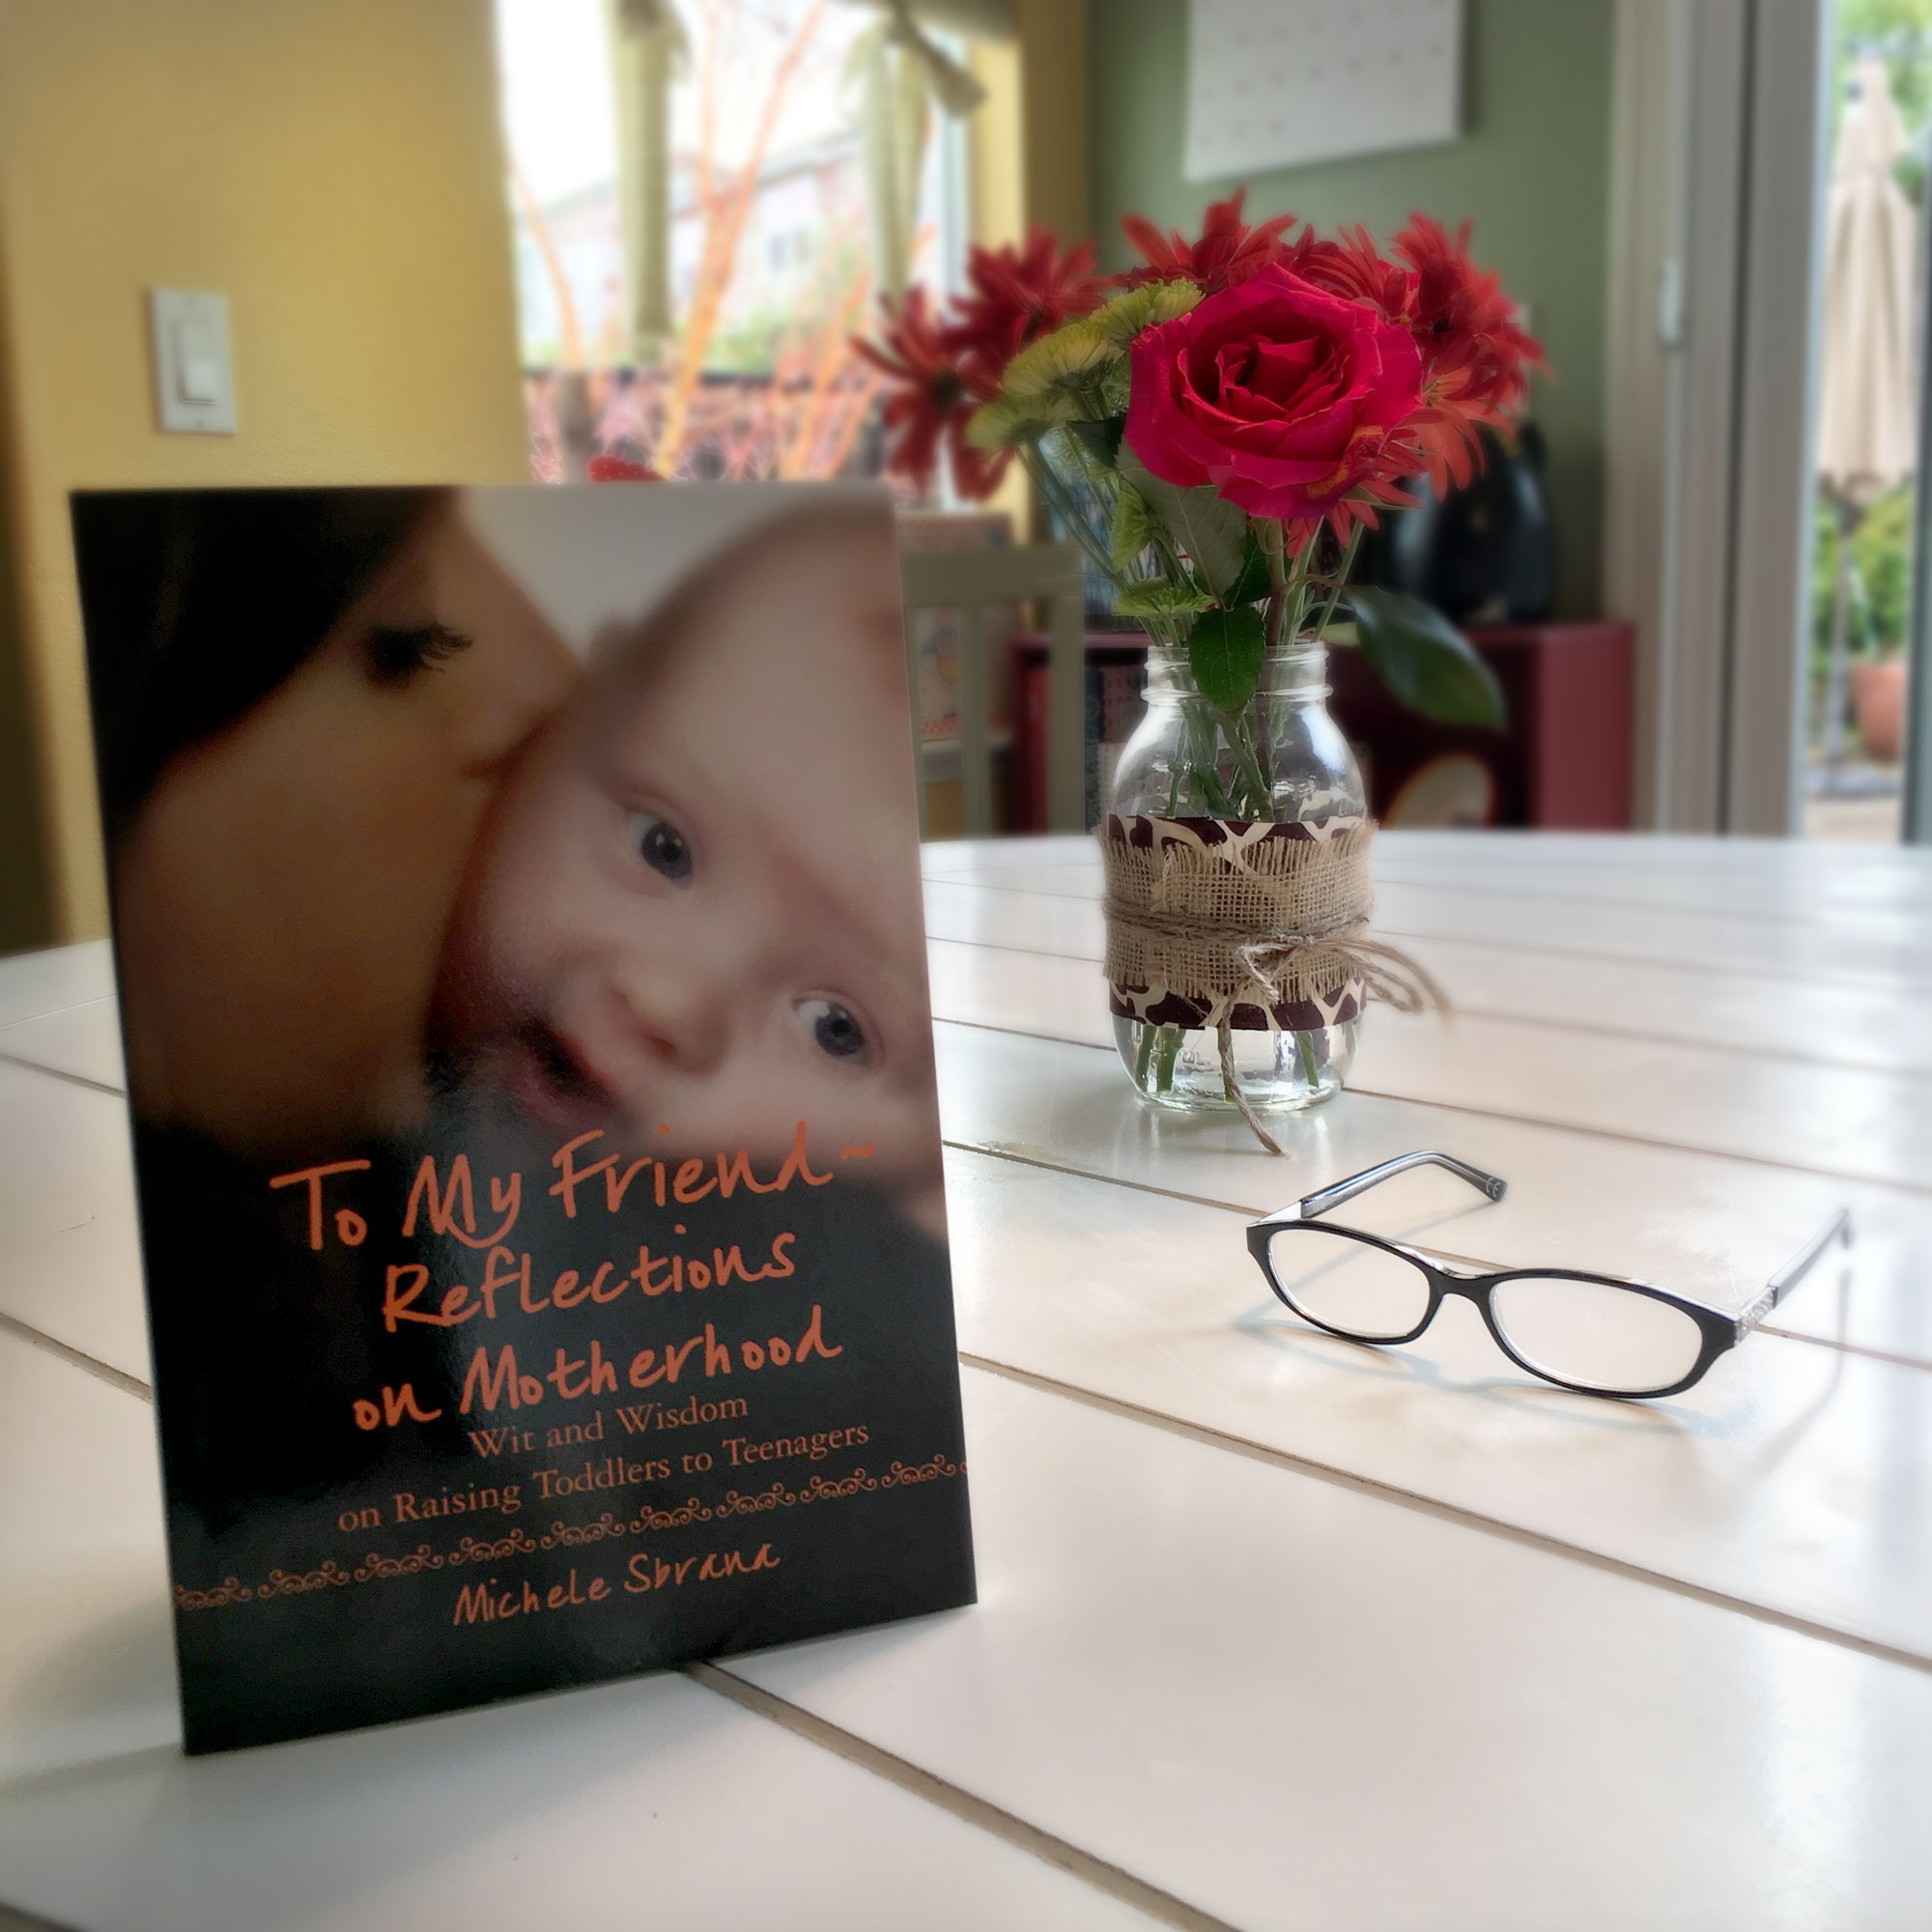 To My Friend  -  Reflections on Motherhood: Wit and Wisdom on Parenting Toddlers to Teens